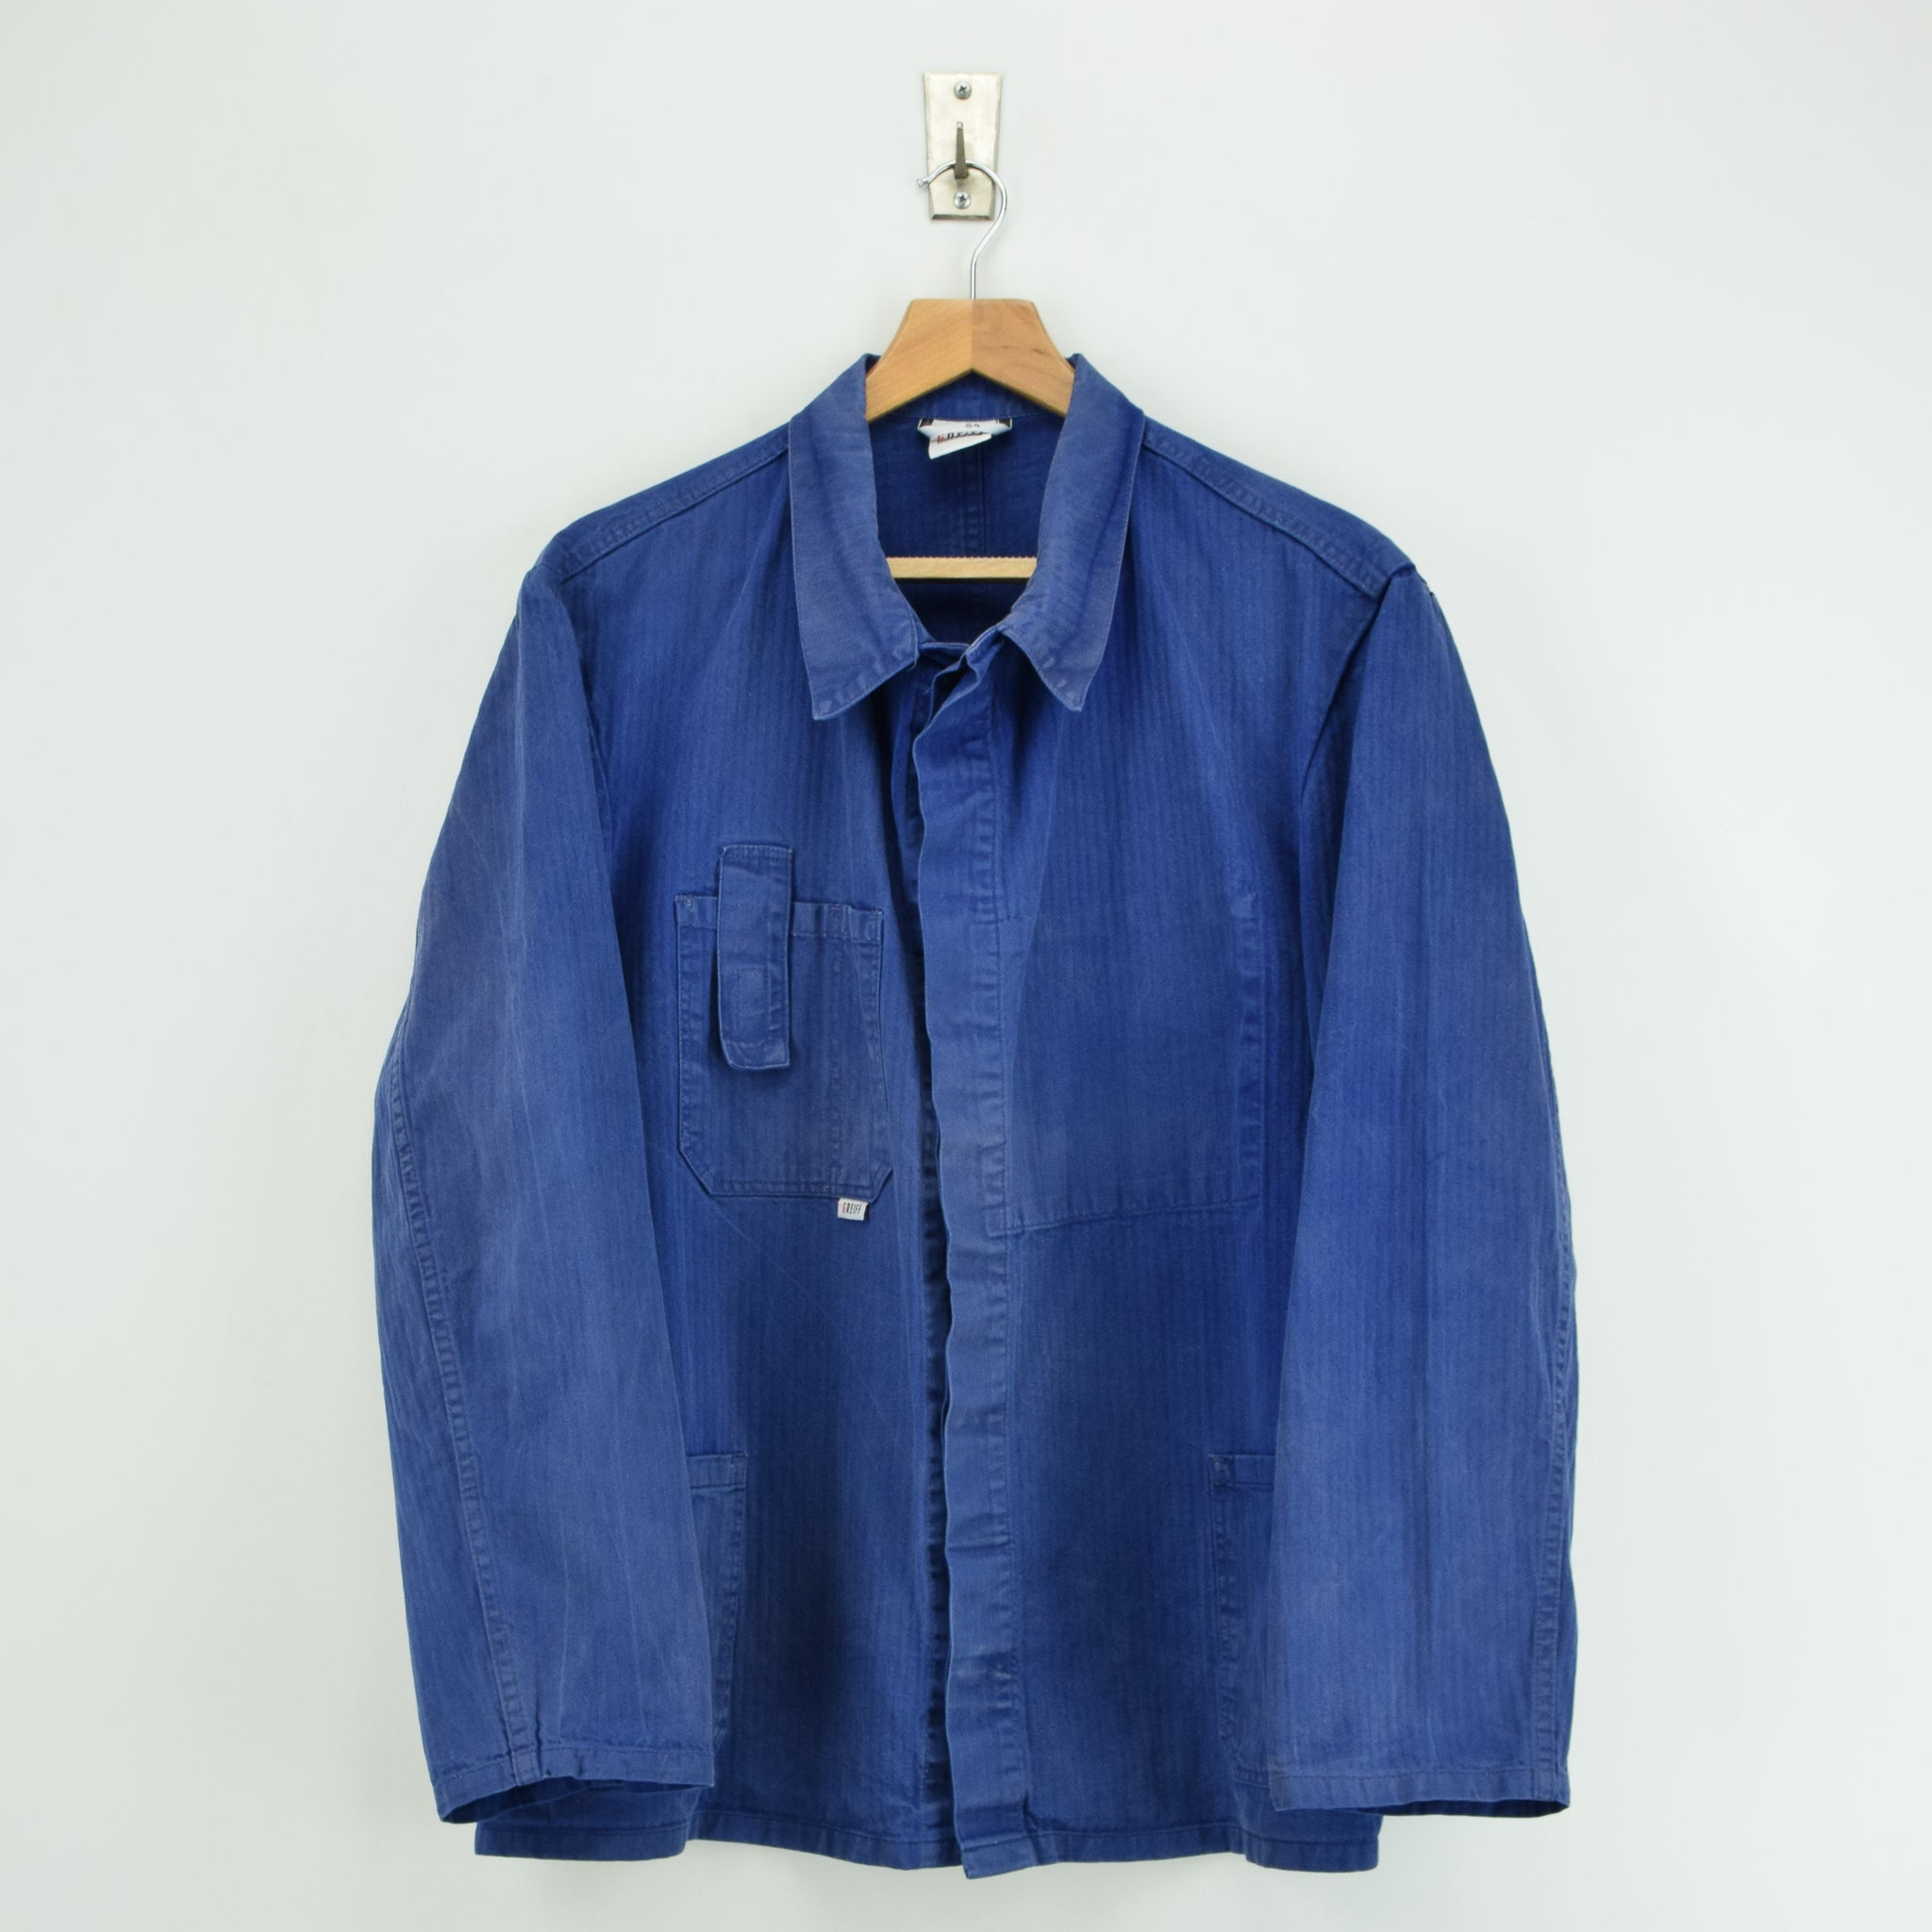 Vintage Distressed Blue French Style Worker Sanforized Cotton Chore Jacket L front